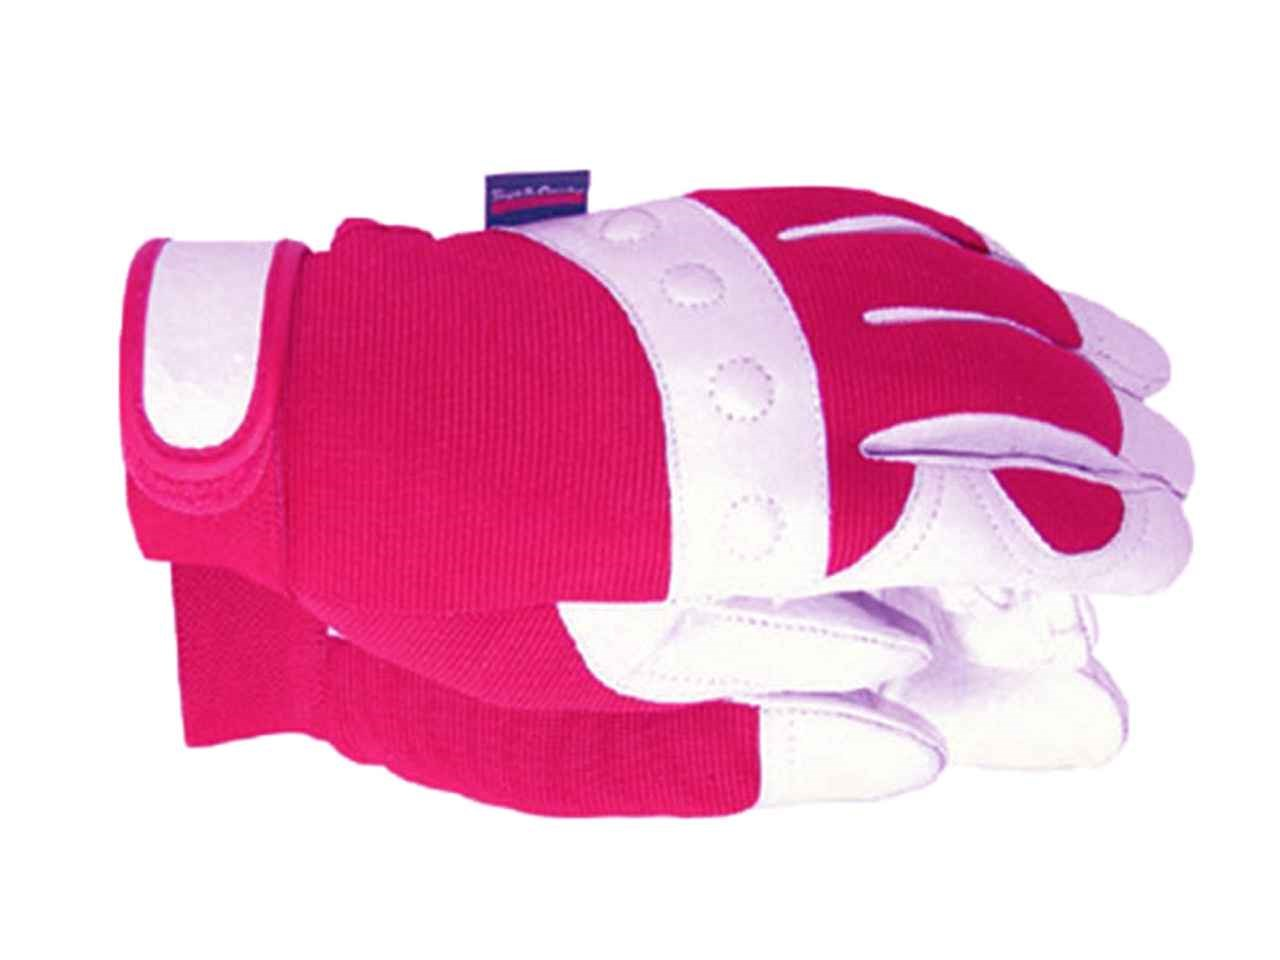 b305ad53c Town and Country T/CTGL104M Comfort Fit Gloves Ladies Medium ...